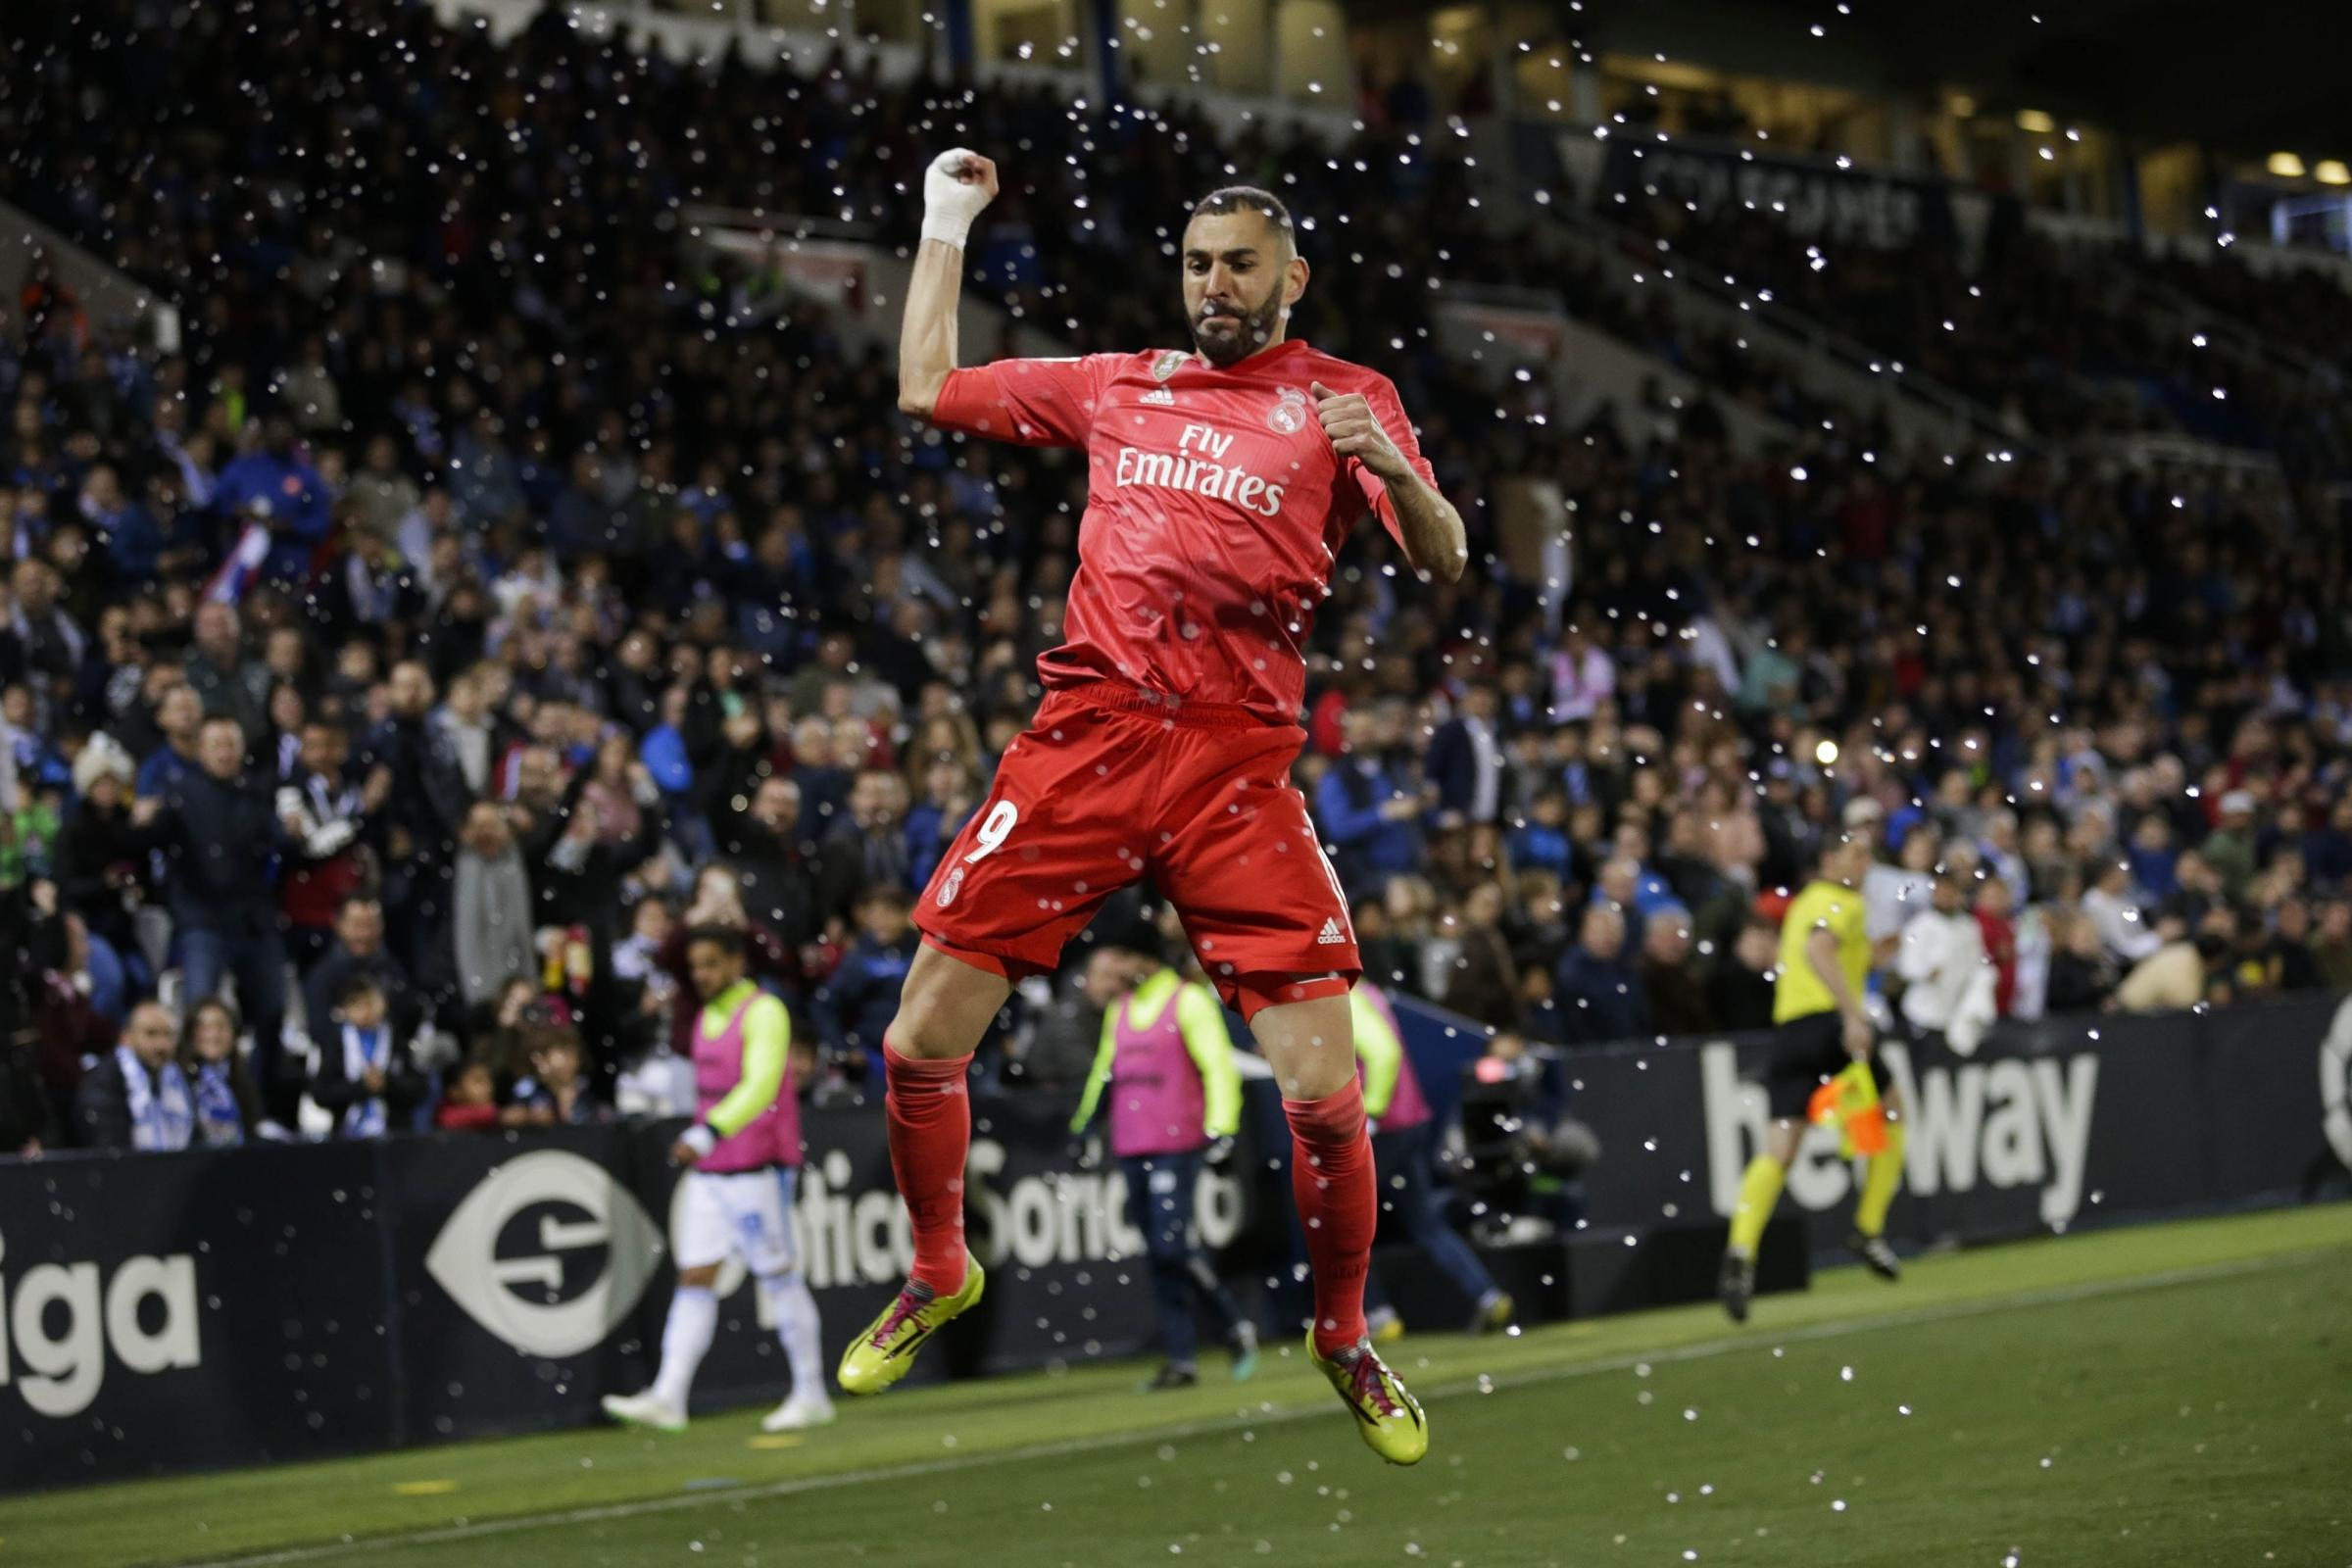 Karim Benzema celebrates his equaliser for Real Madrid early in the second half